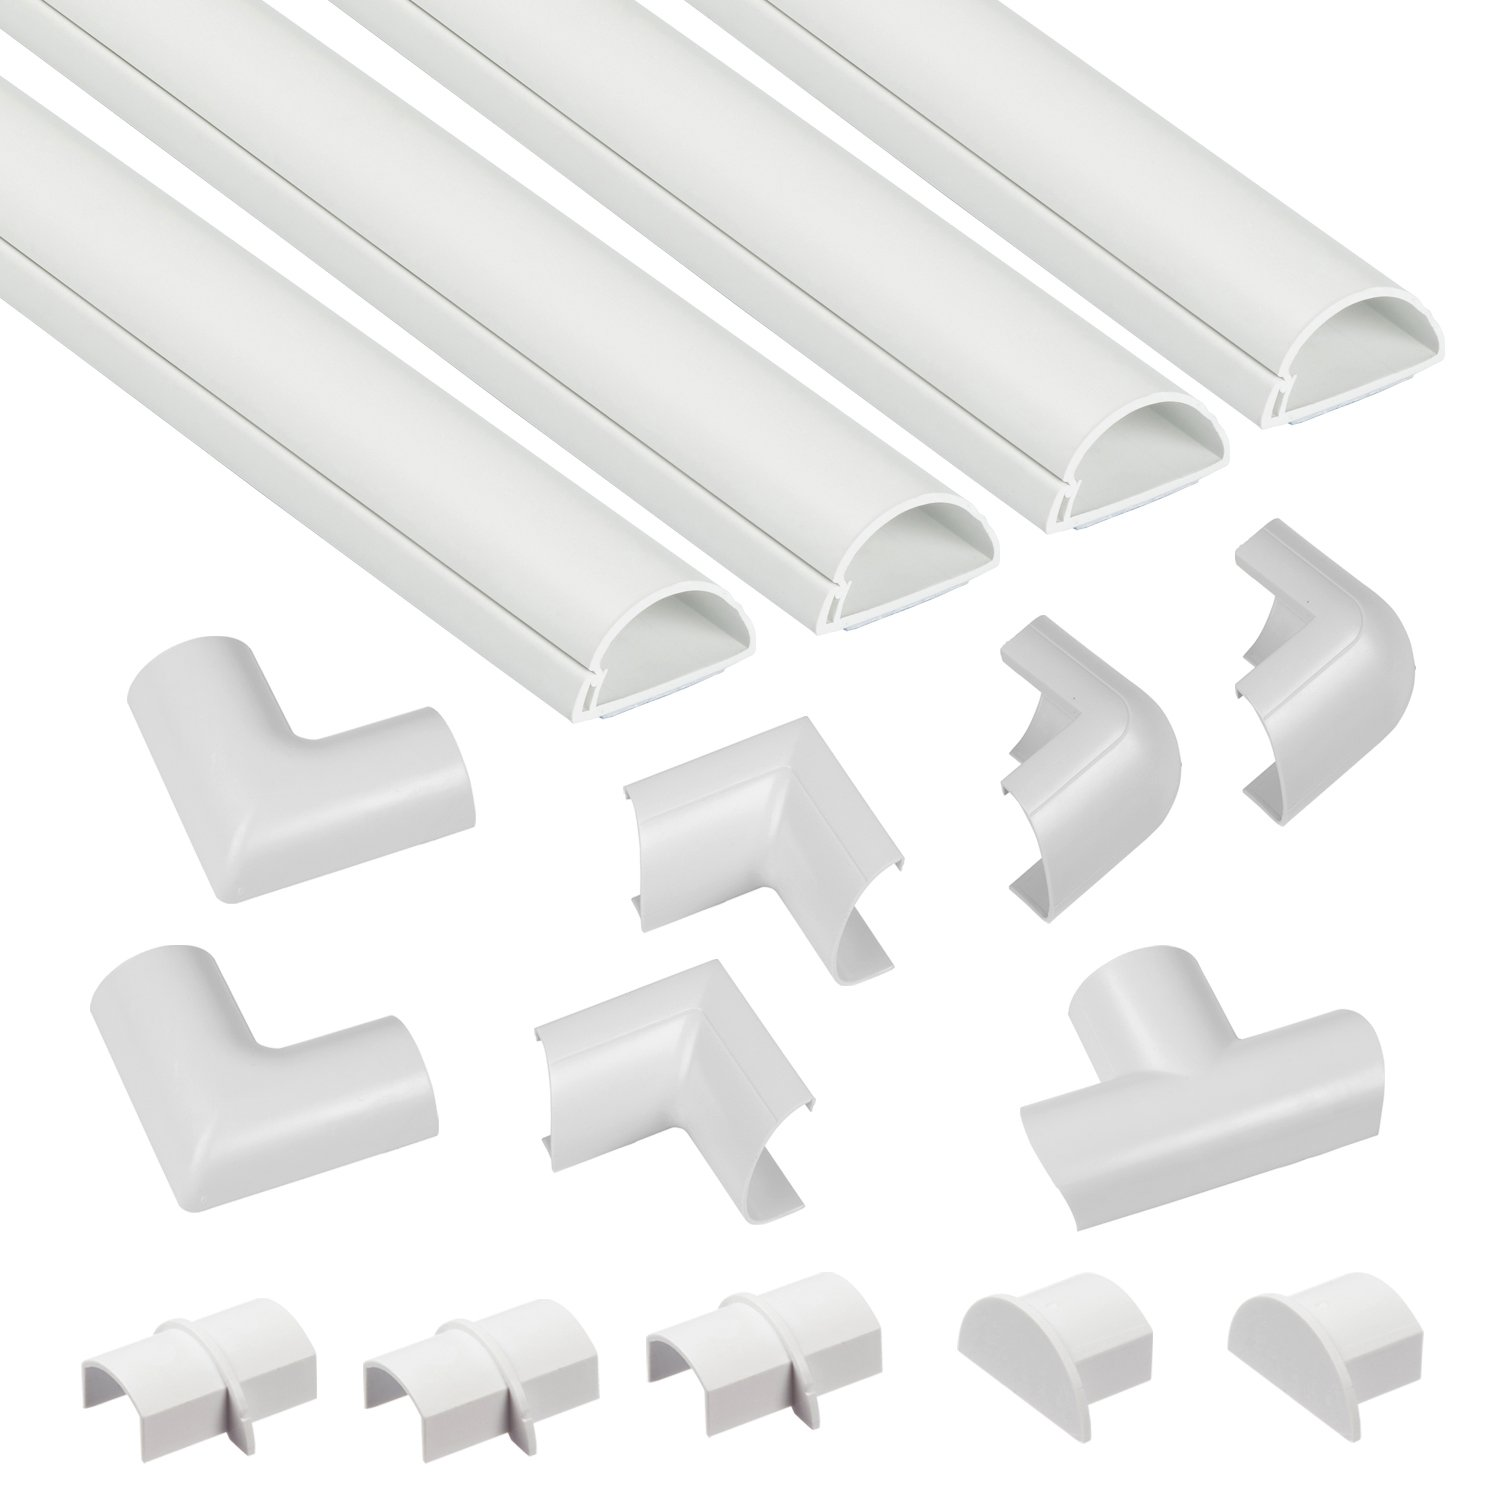 D-Line Mini Cable Raceway Kit | Self-Adhesive Wire Covers | Electrical Raceway, Popular Cable Organizer for Home Theater, TV, Office and Home | 4 x 39'' Lengths Per Pack - White